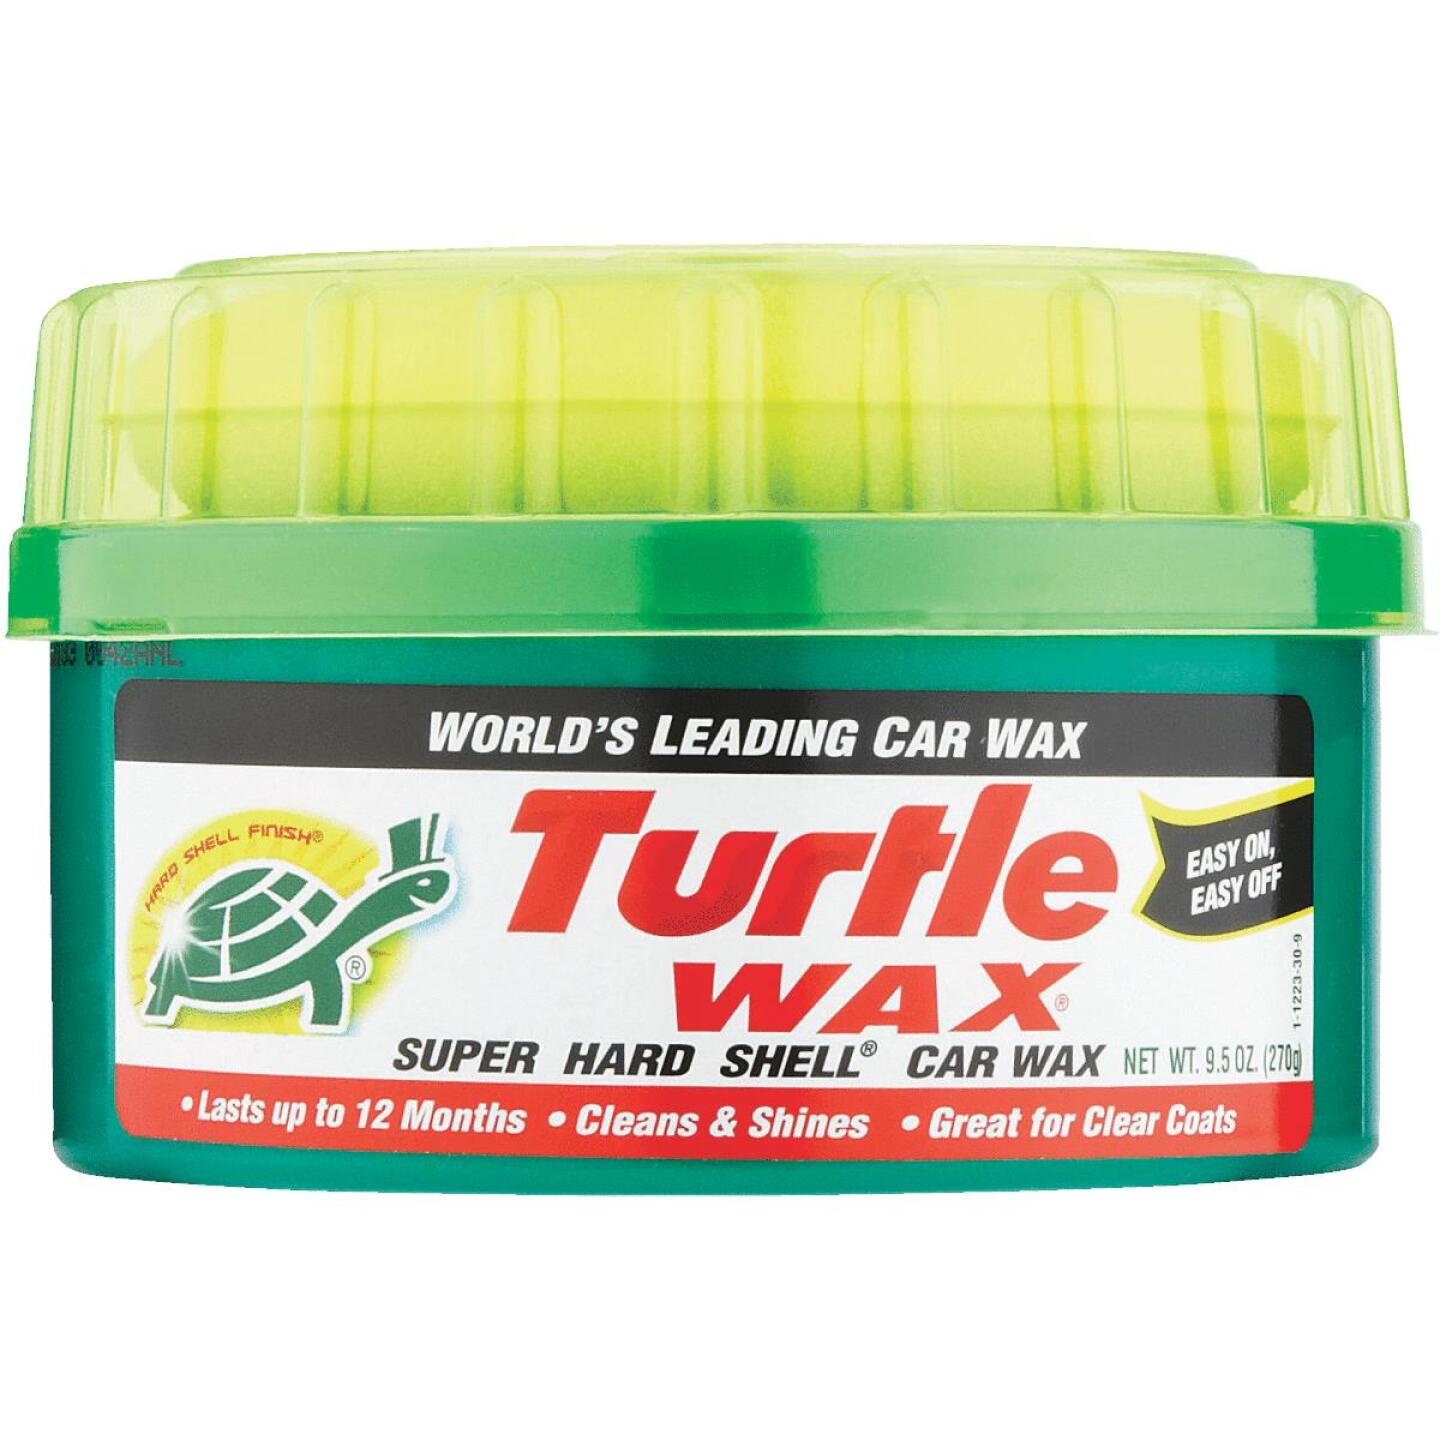 Turtle Wax Super Hard Shell Paste 9.5 oz Car Wax Image 2